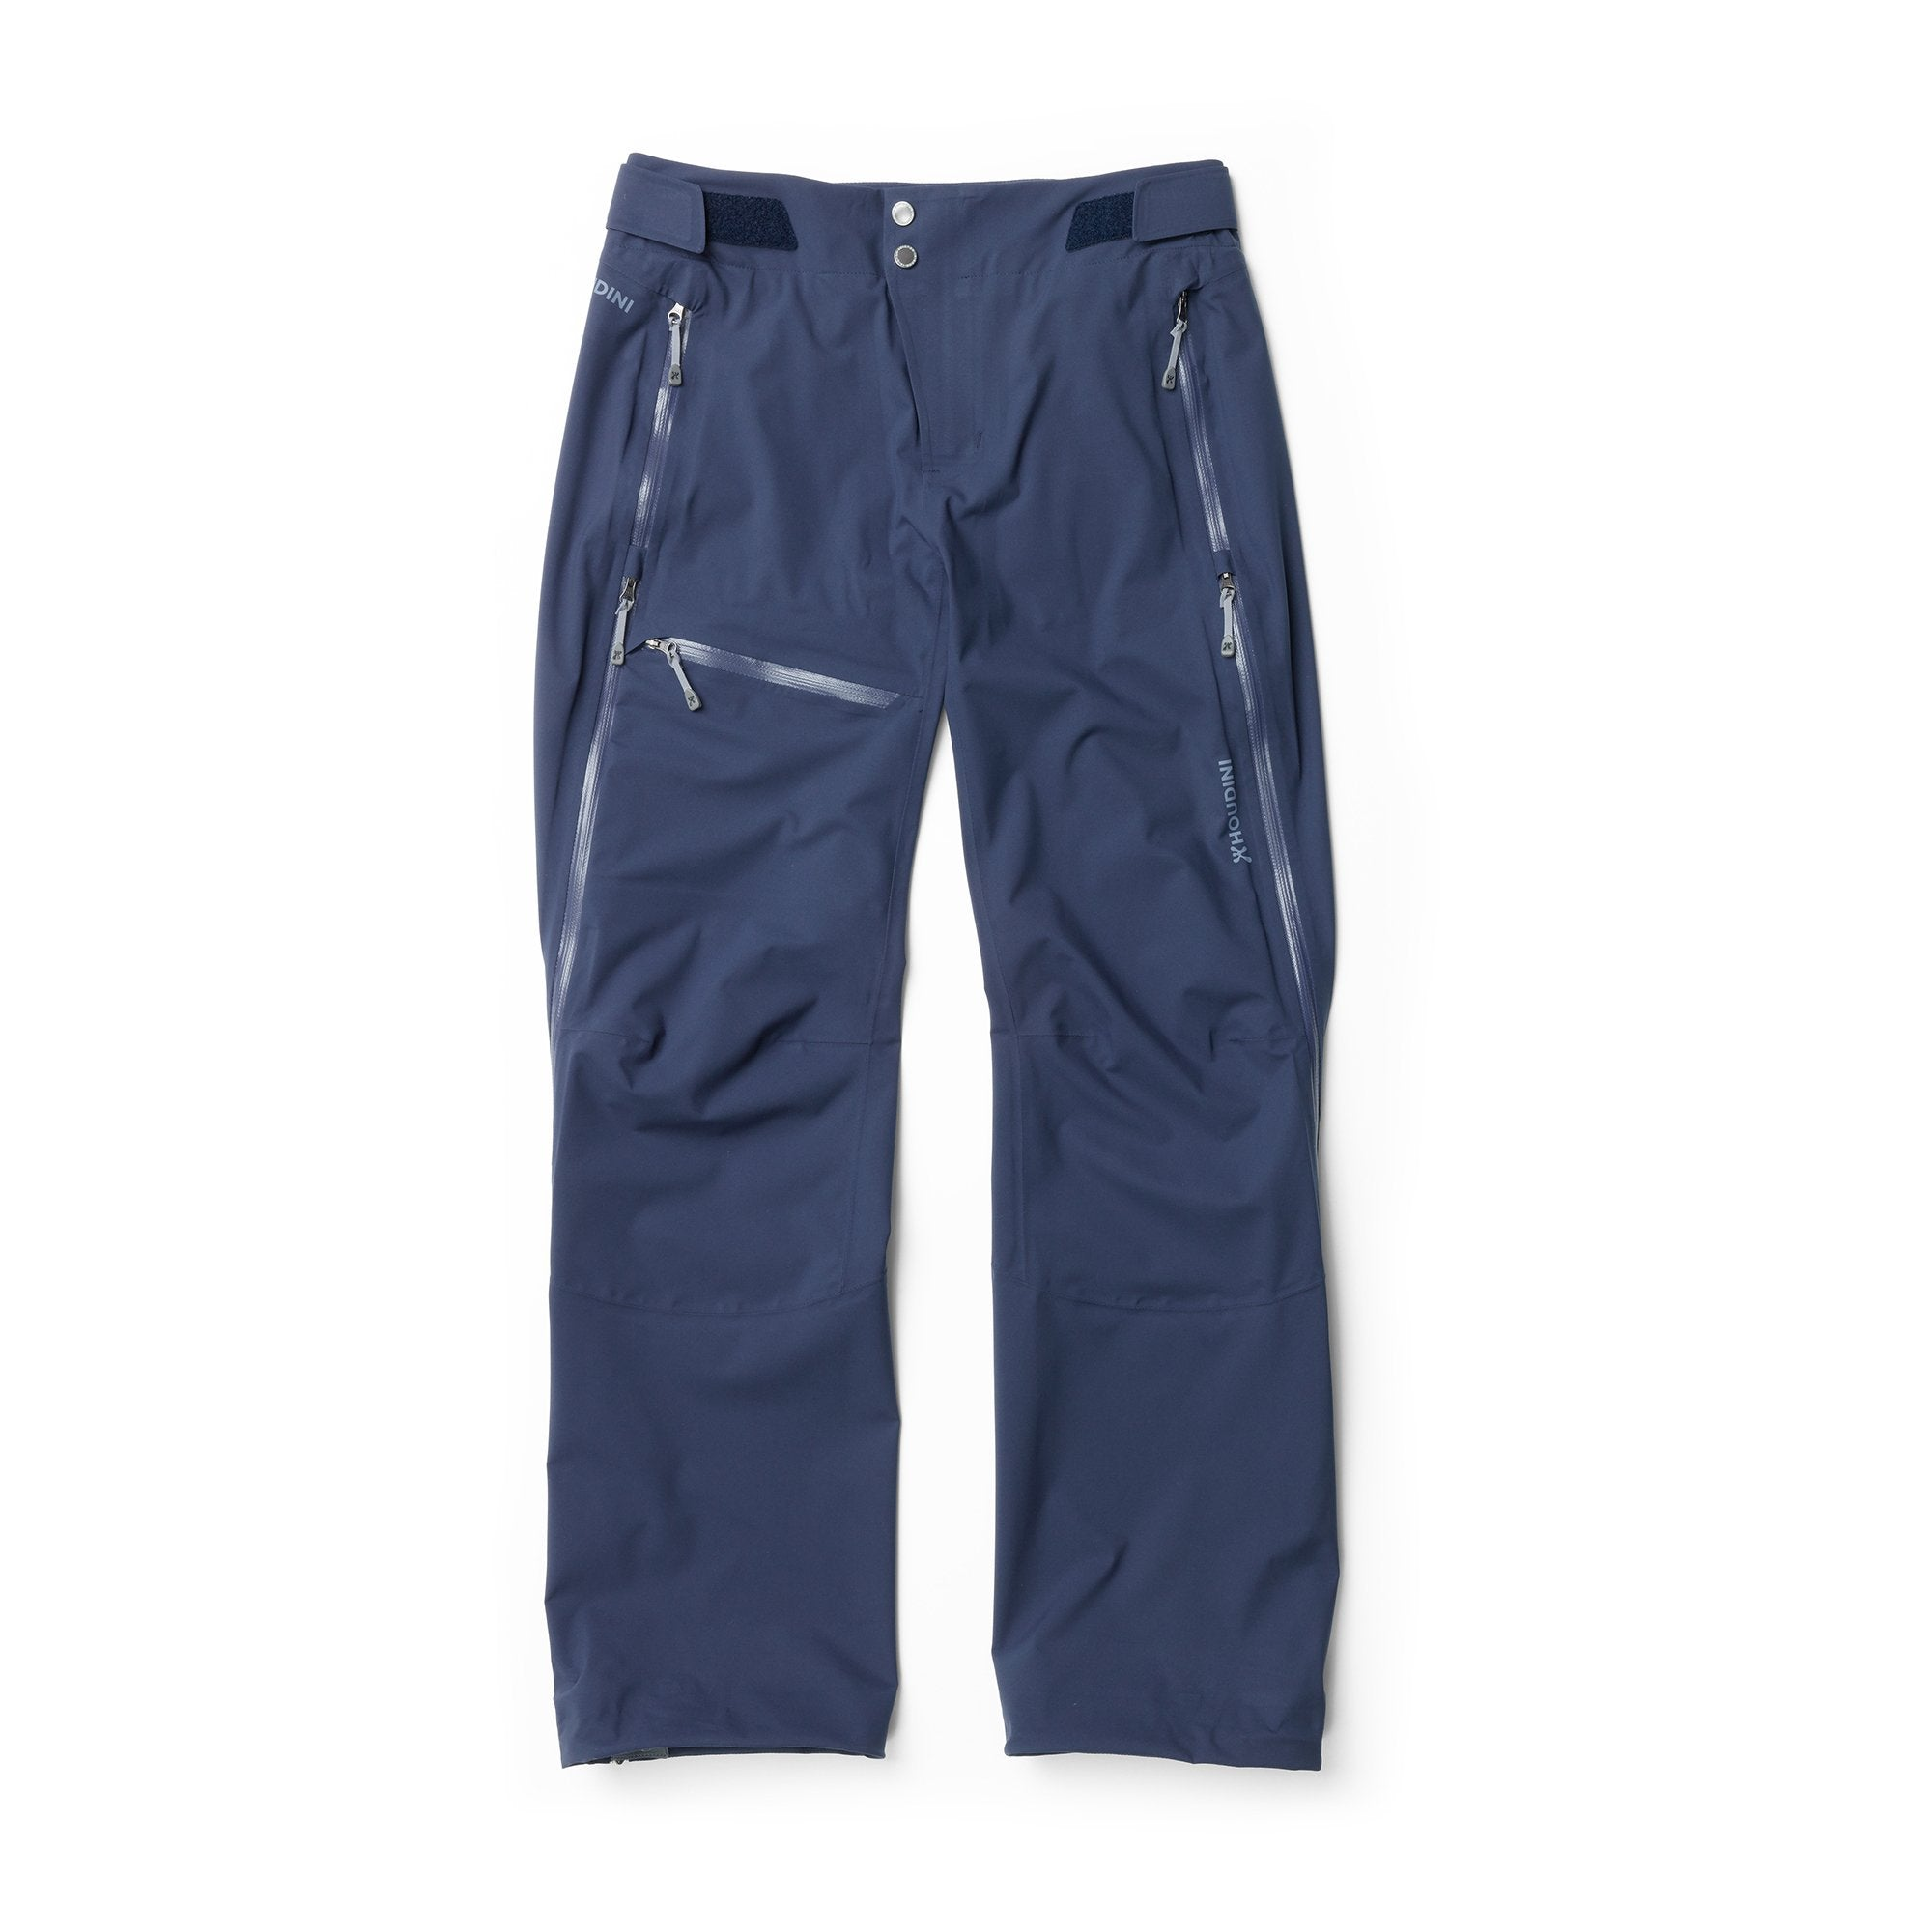 BFF Pants - Bucket Blue - Dam - Vindpinad